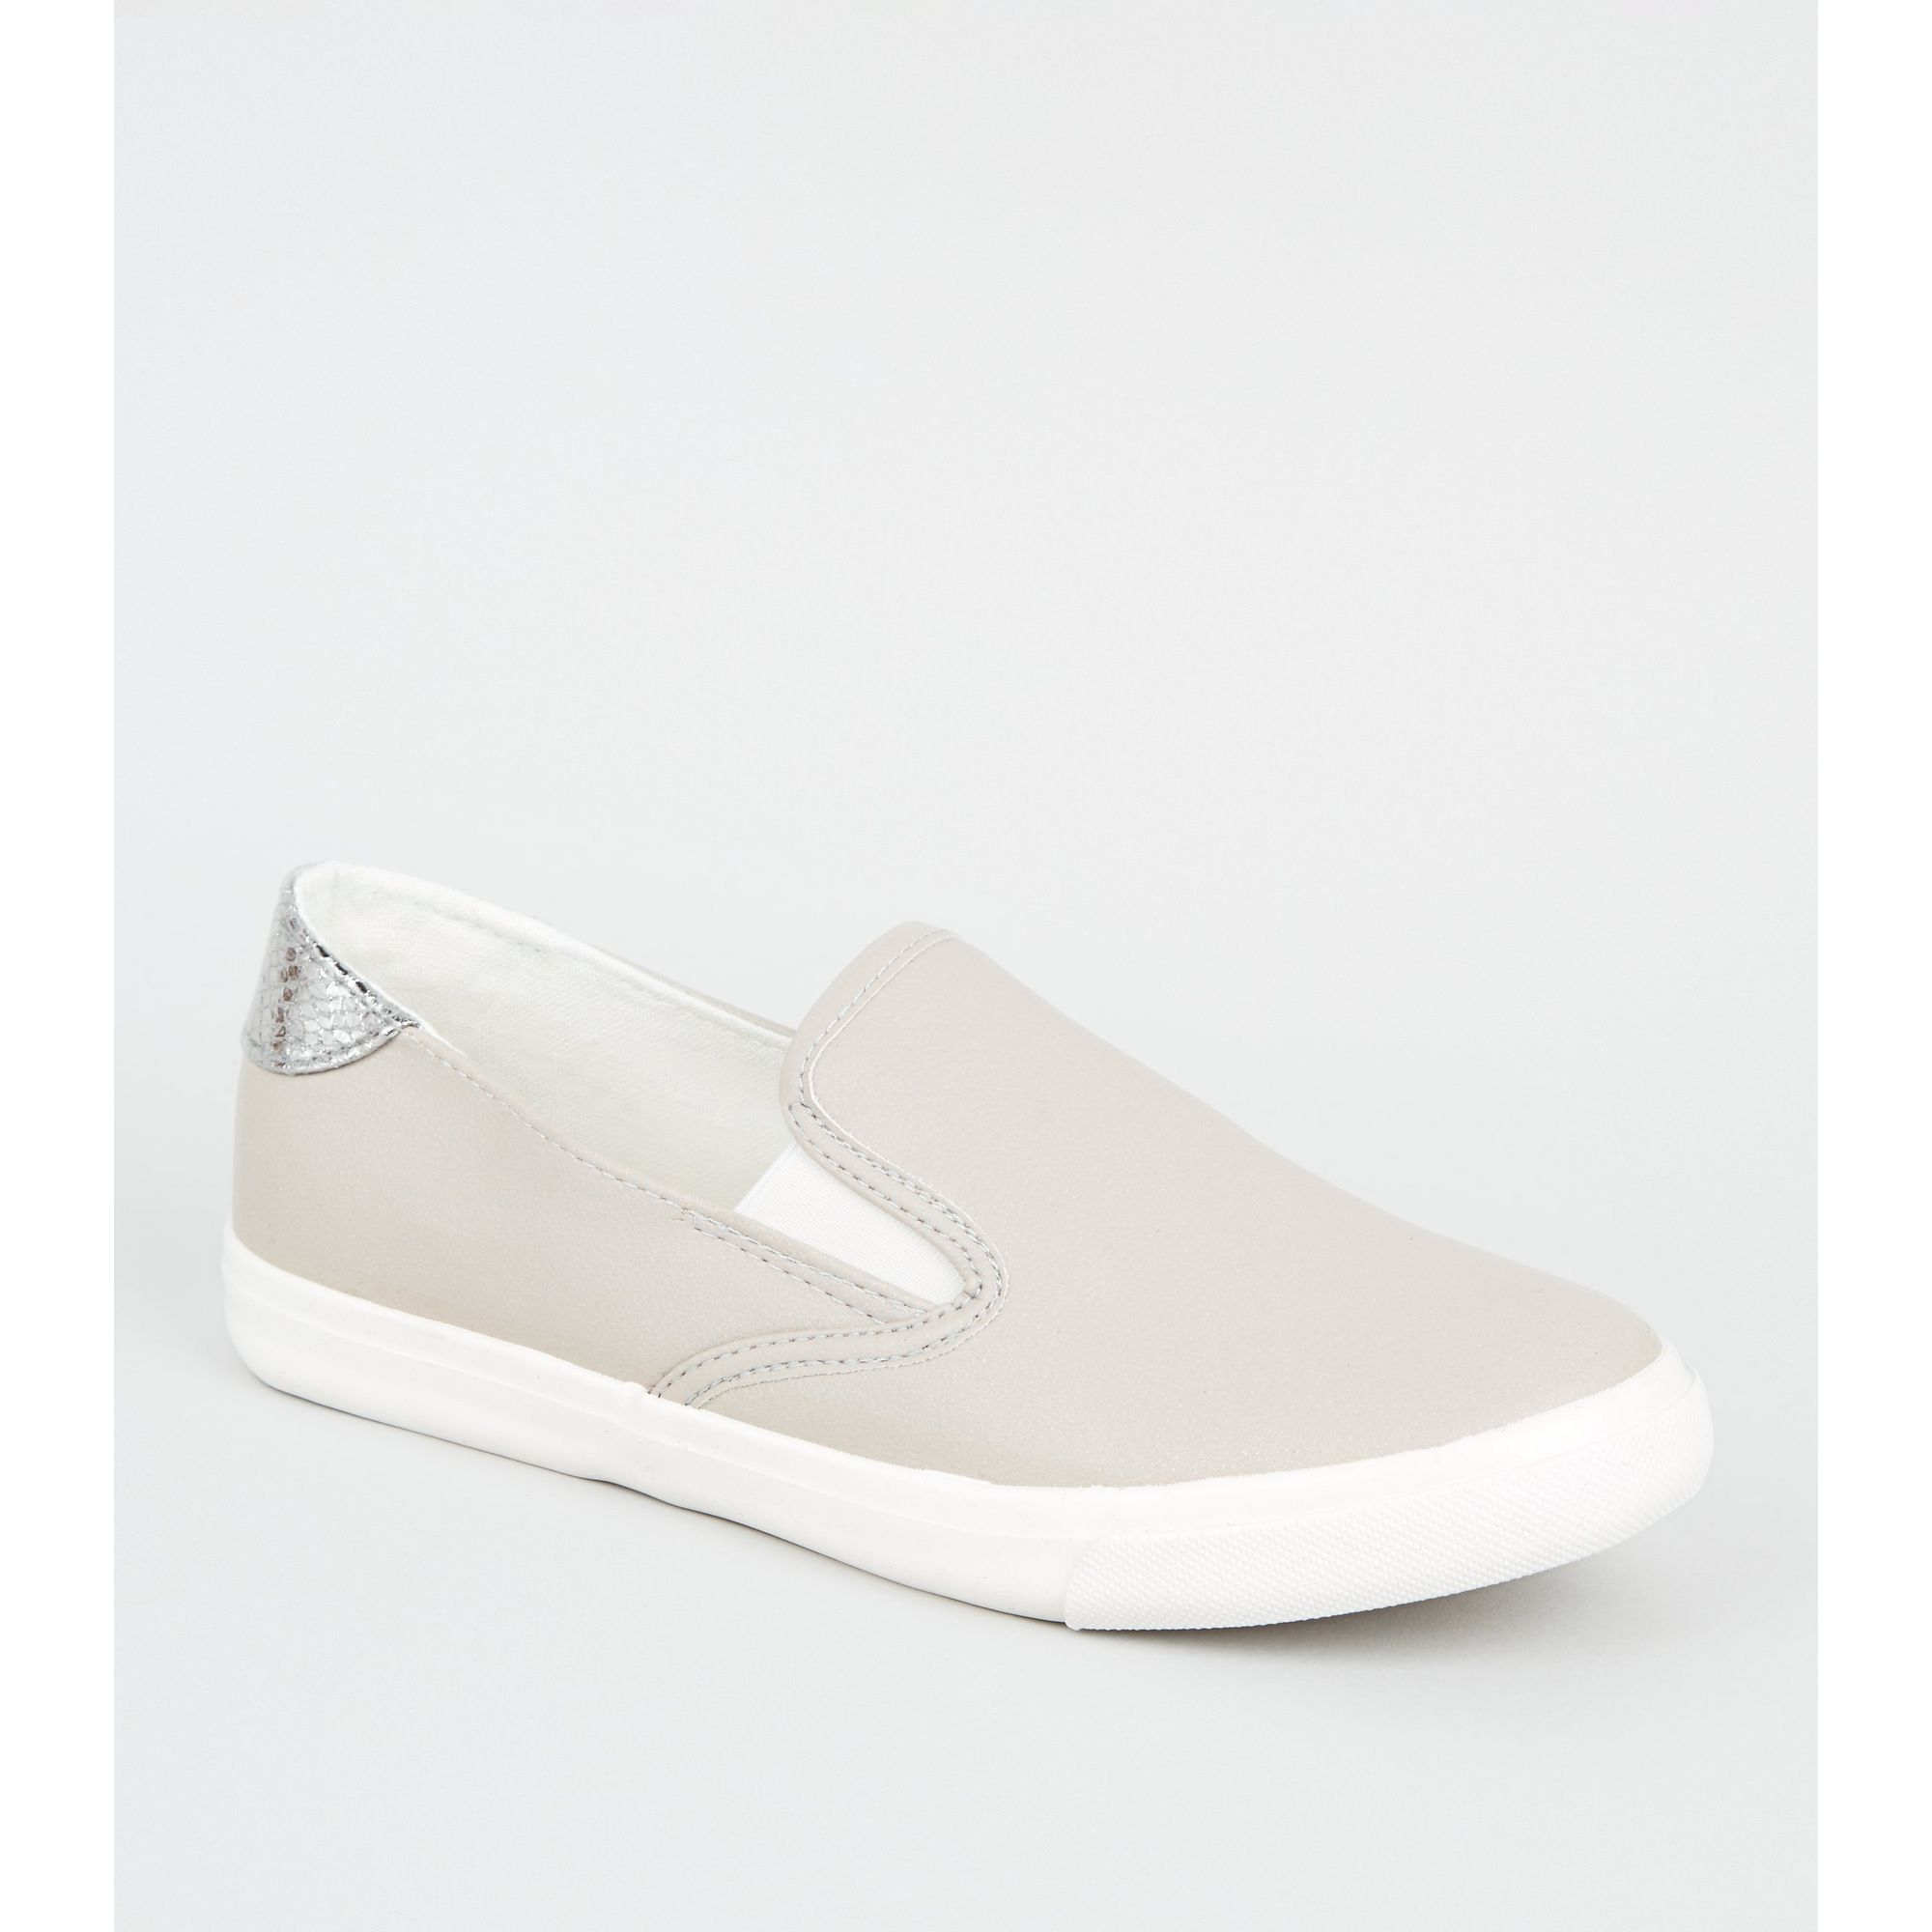 New-Look-Wide-Fit-Leather-Look-Slip-On-Trainers thumbnail 7